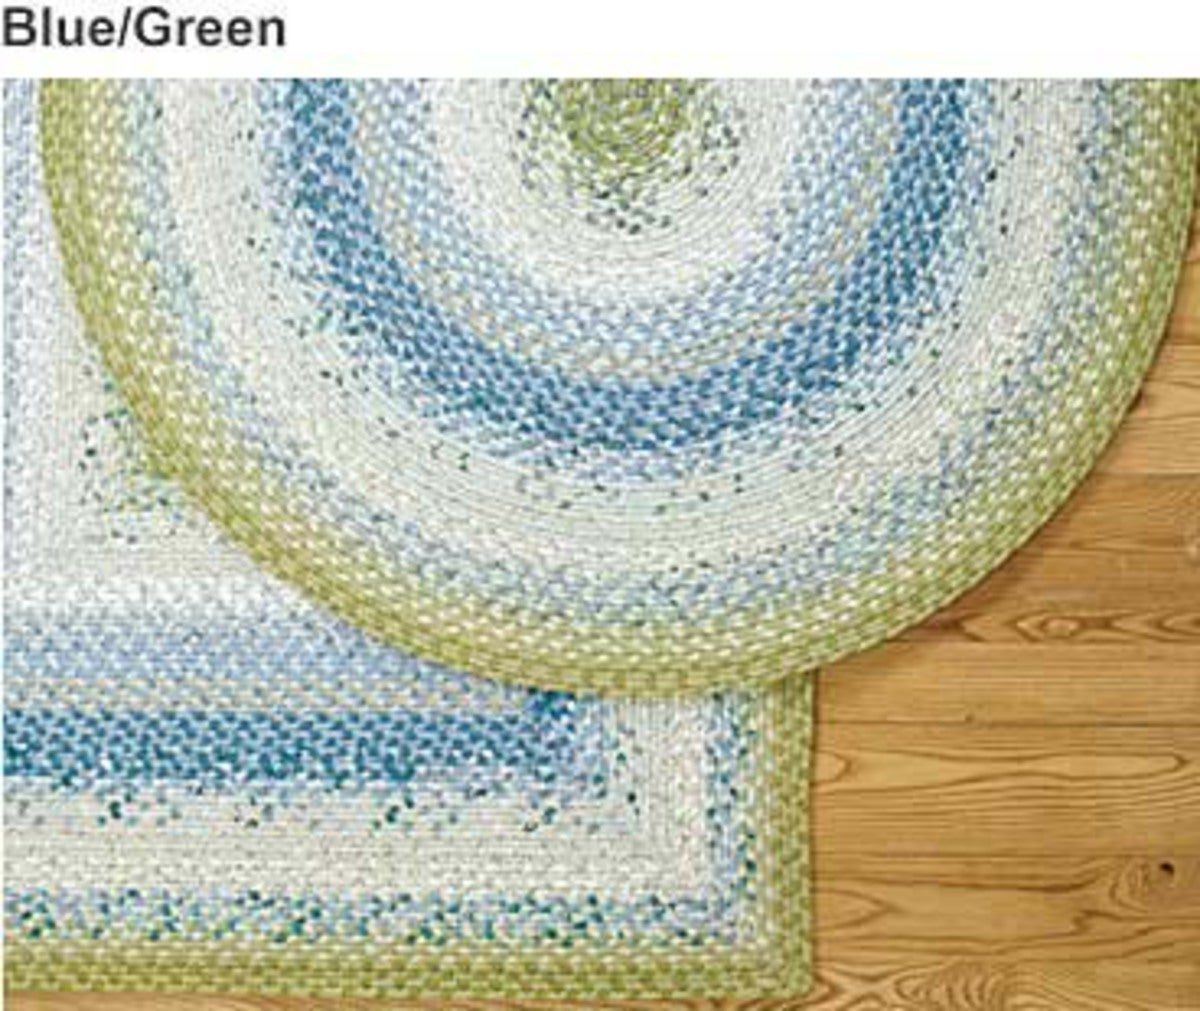 4' x 6' Rectangular Cotton Blend Braided Rug - Blue/Green